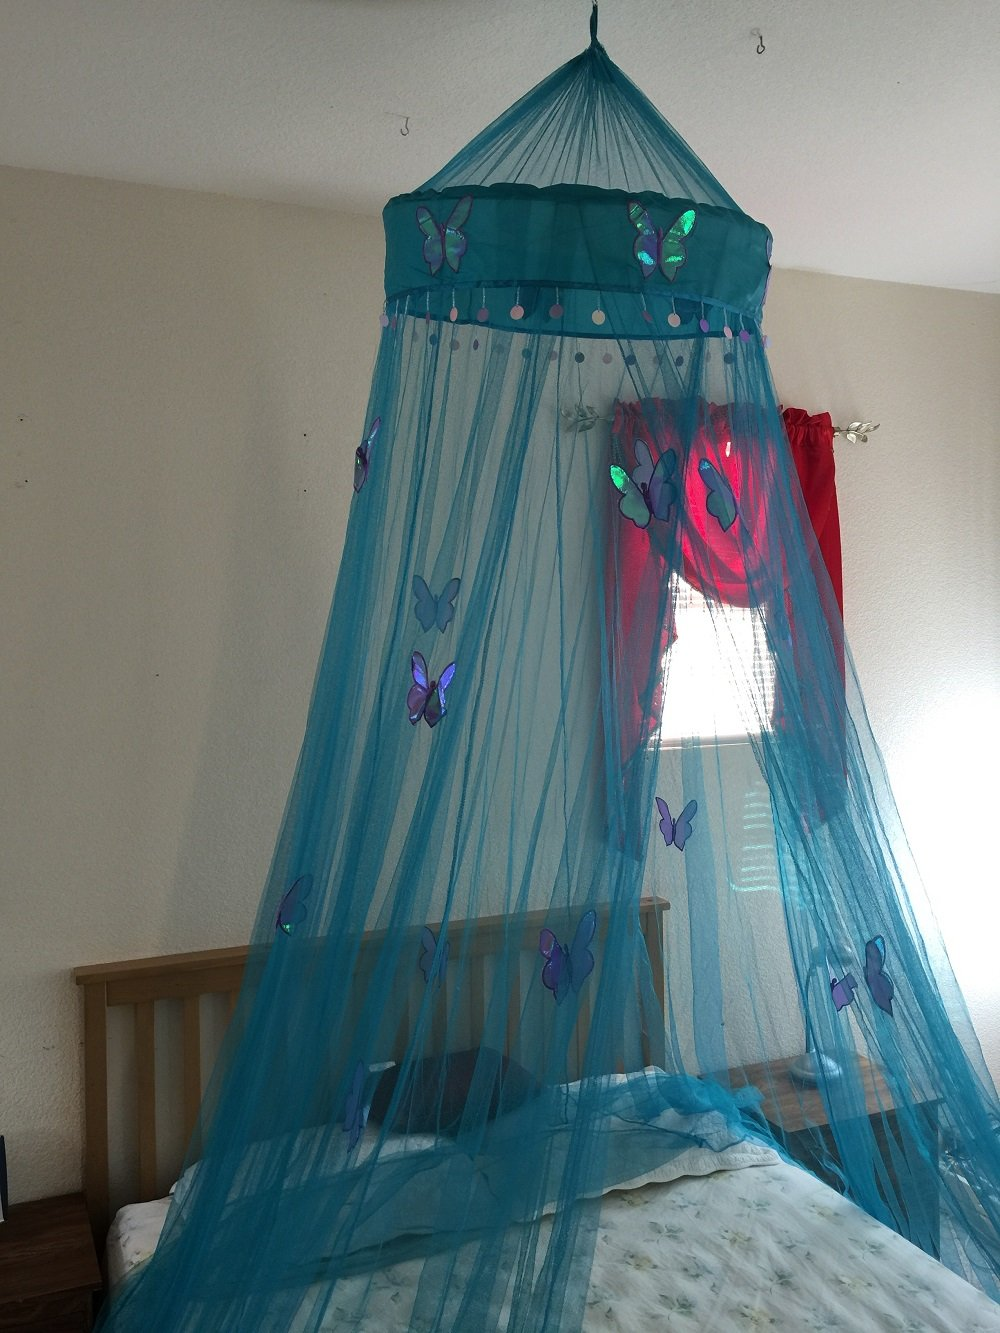 Amazon.com Octorose ® Butterfly Bed Canopy Mosquito NET Crib Twin Full Queen King (Teal Blue) Kitchen u0026 Dining & Amazon.com: Octorose ® Butterfly Bed Canopy Mosquito NET Crib Twin ...